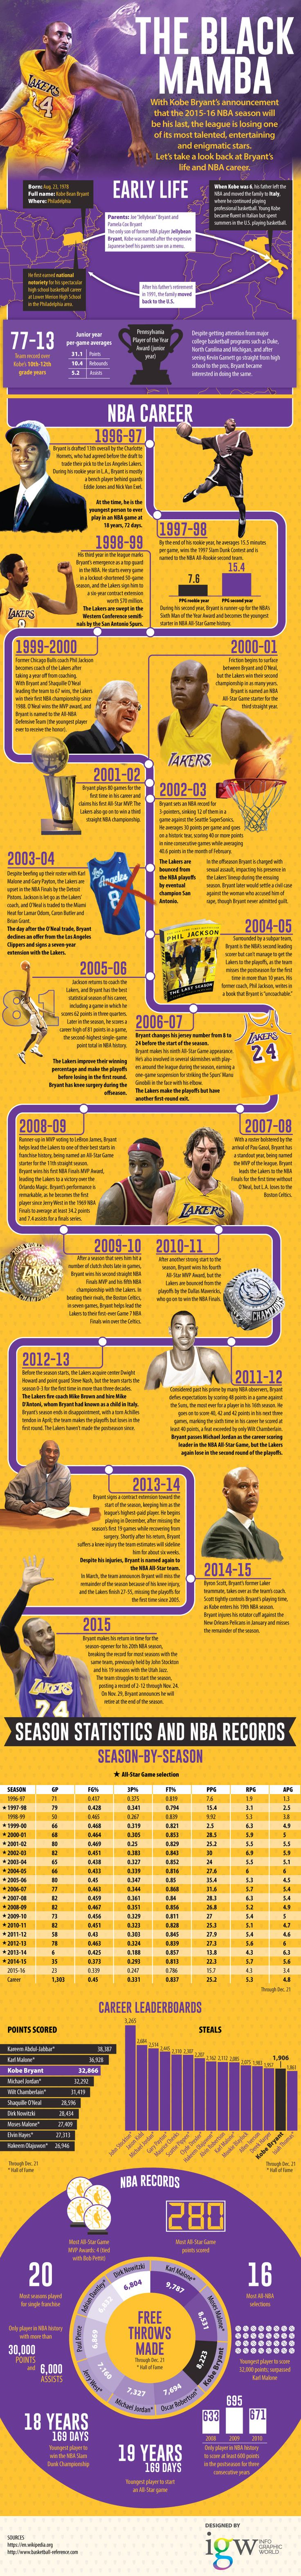 "From humble beginnings to becoming one of the most recognized faces in the NBA, here's our rendition of the Kobe Bryant ""look back"". #basketball"